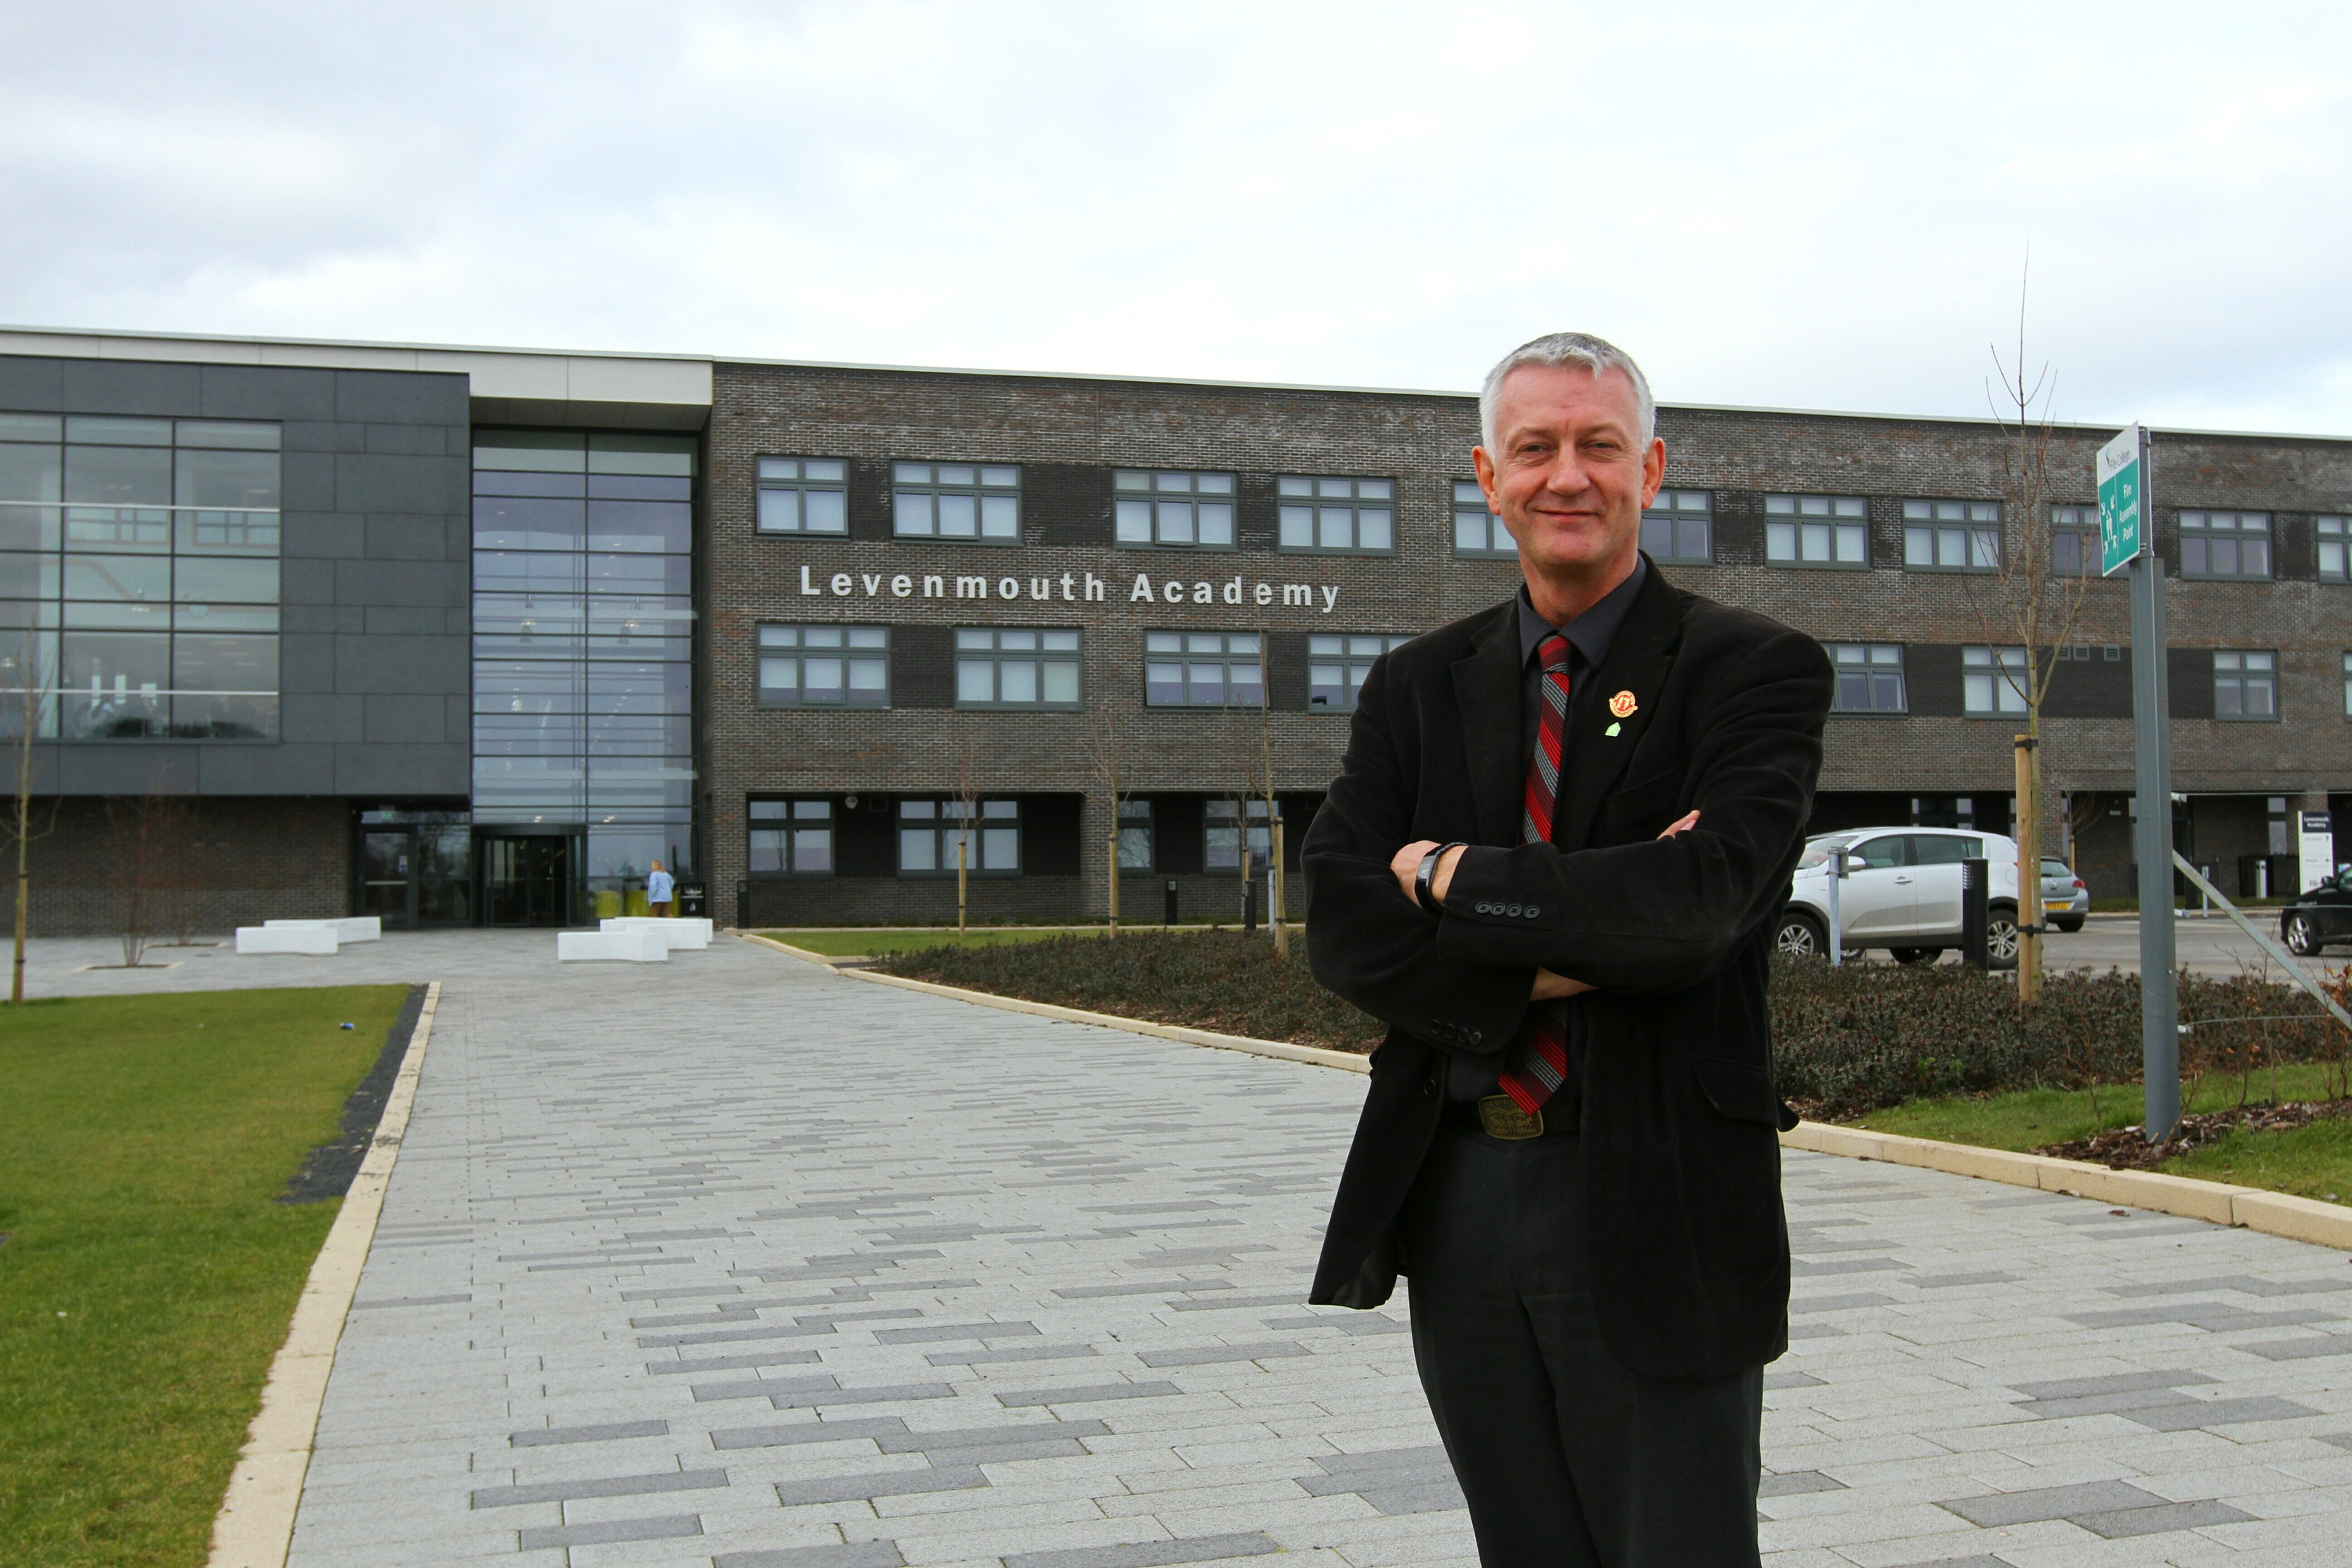 Councillor Adams has praised the school